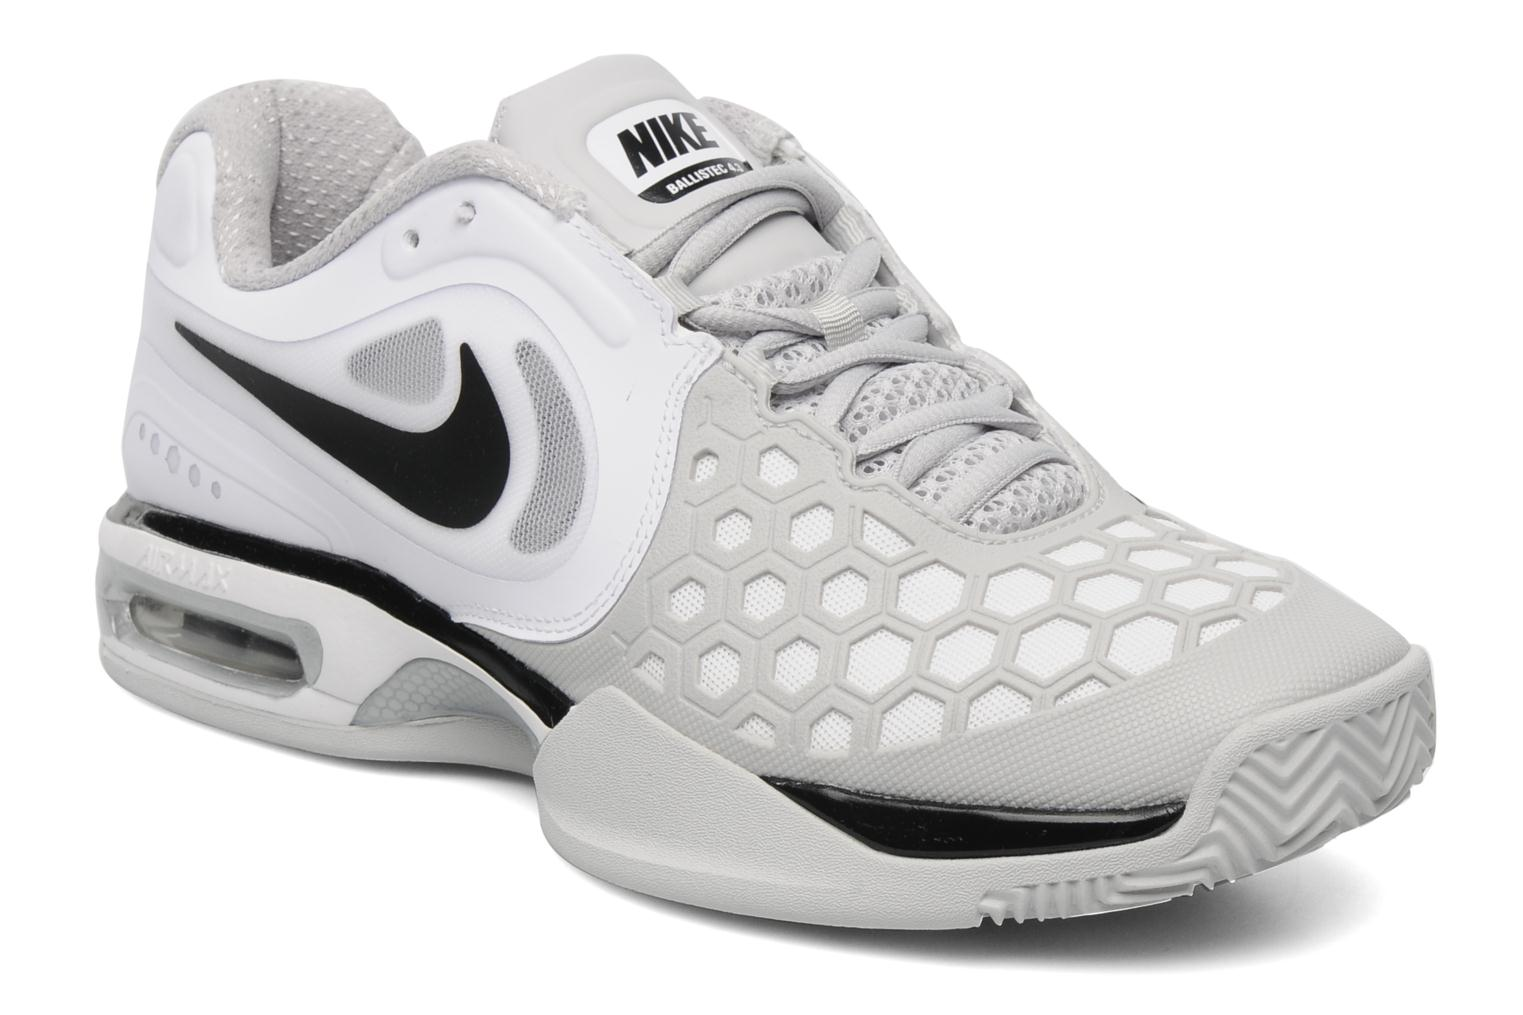 closer at united states cheapest price nike air max courtballistec > OFF57% Discounts